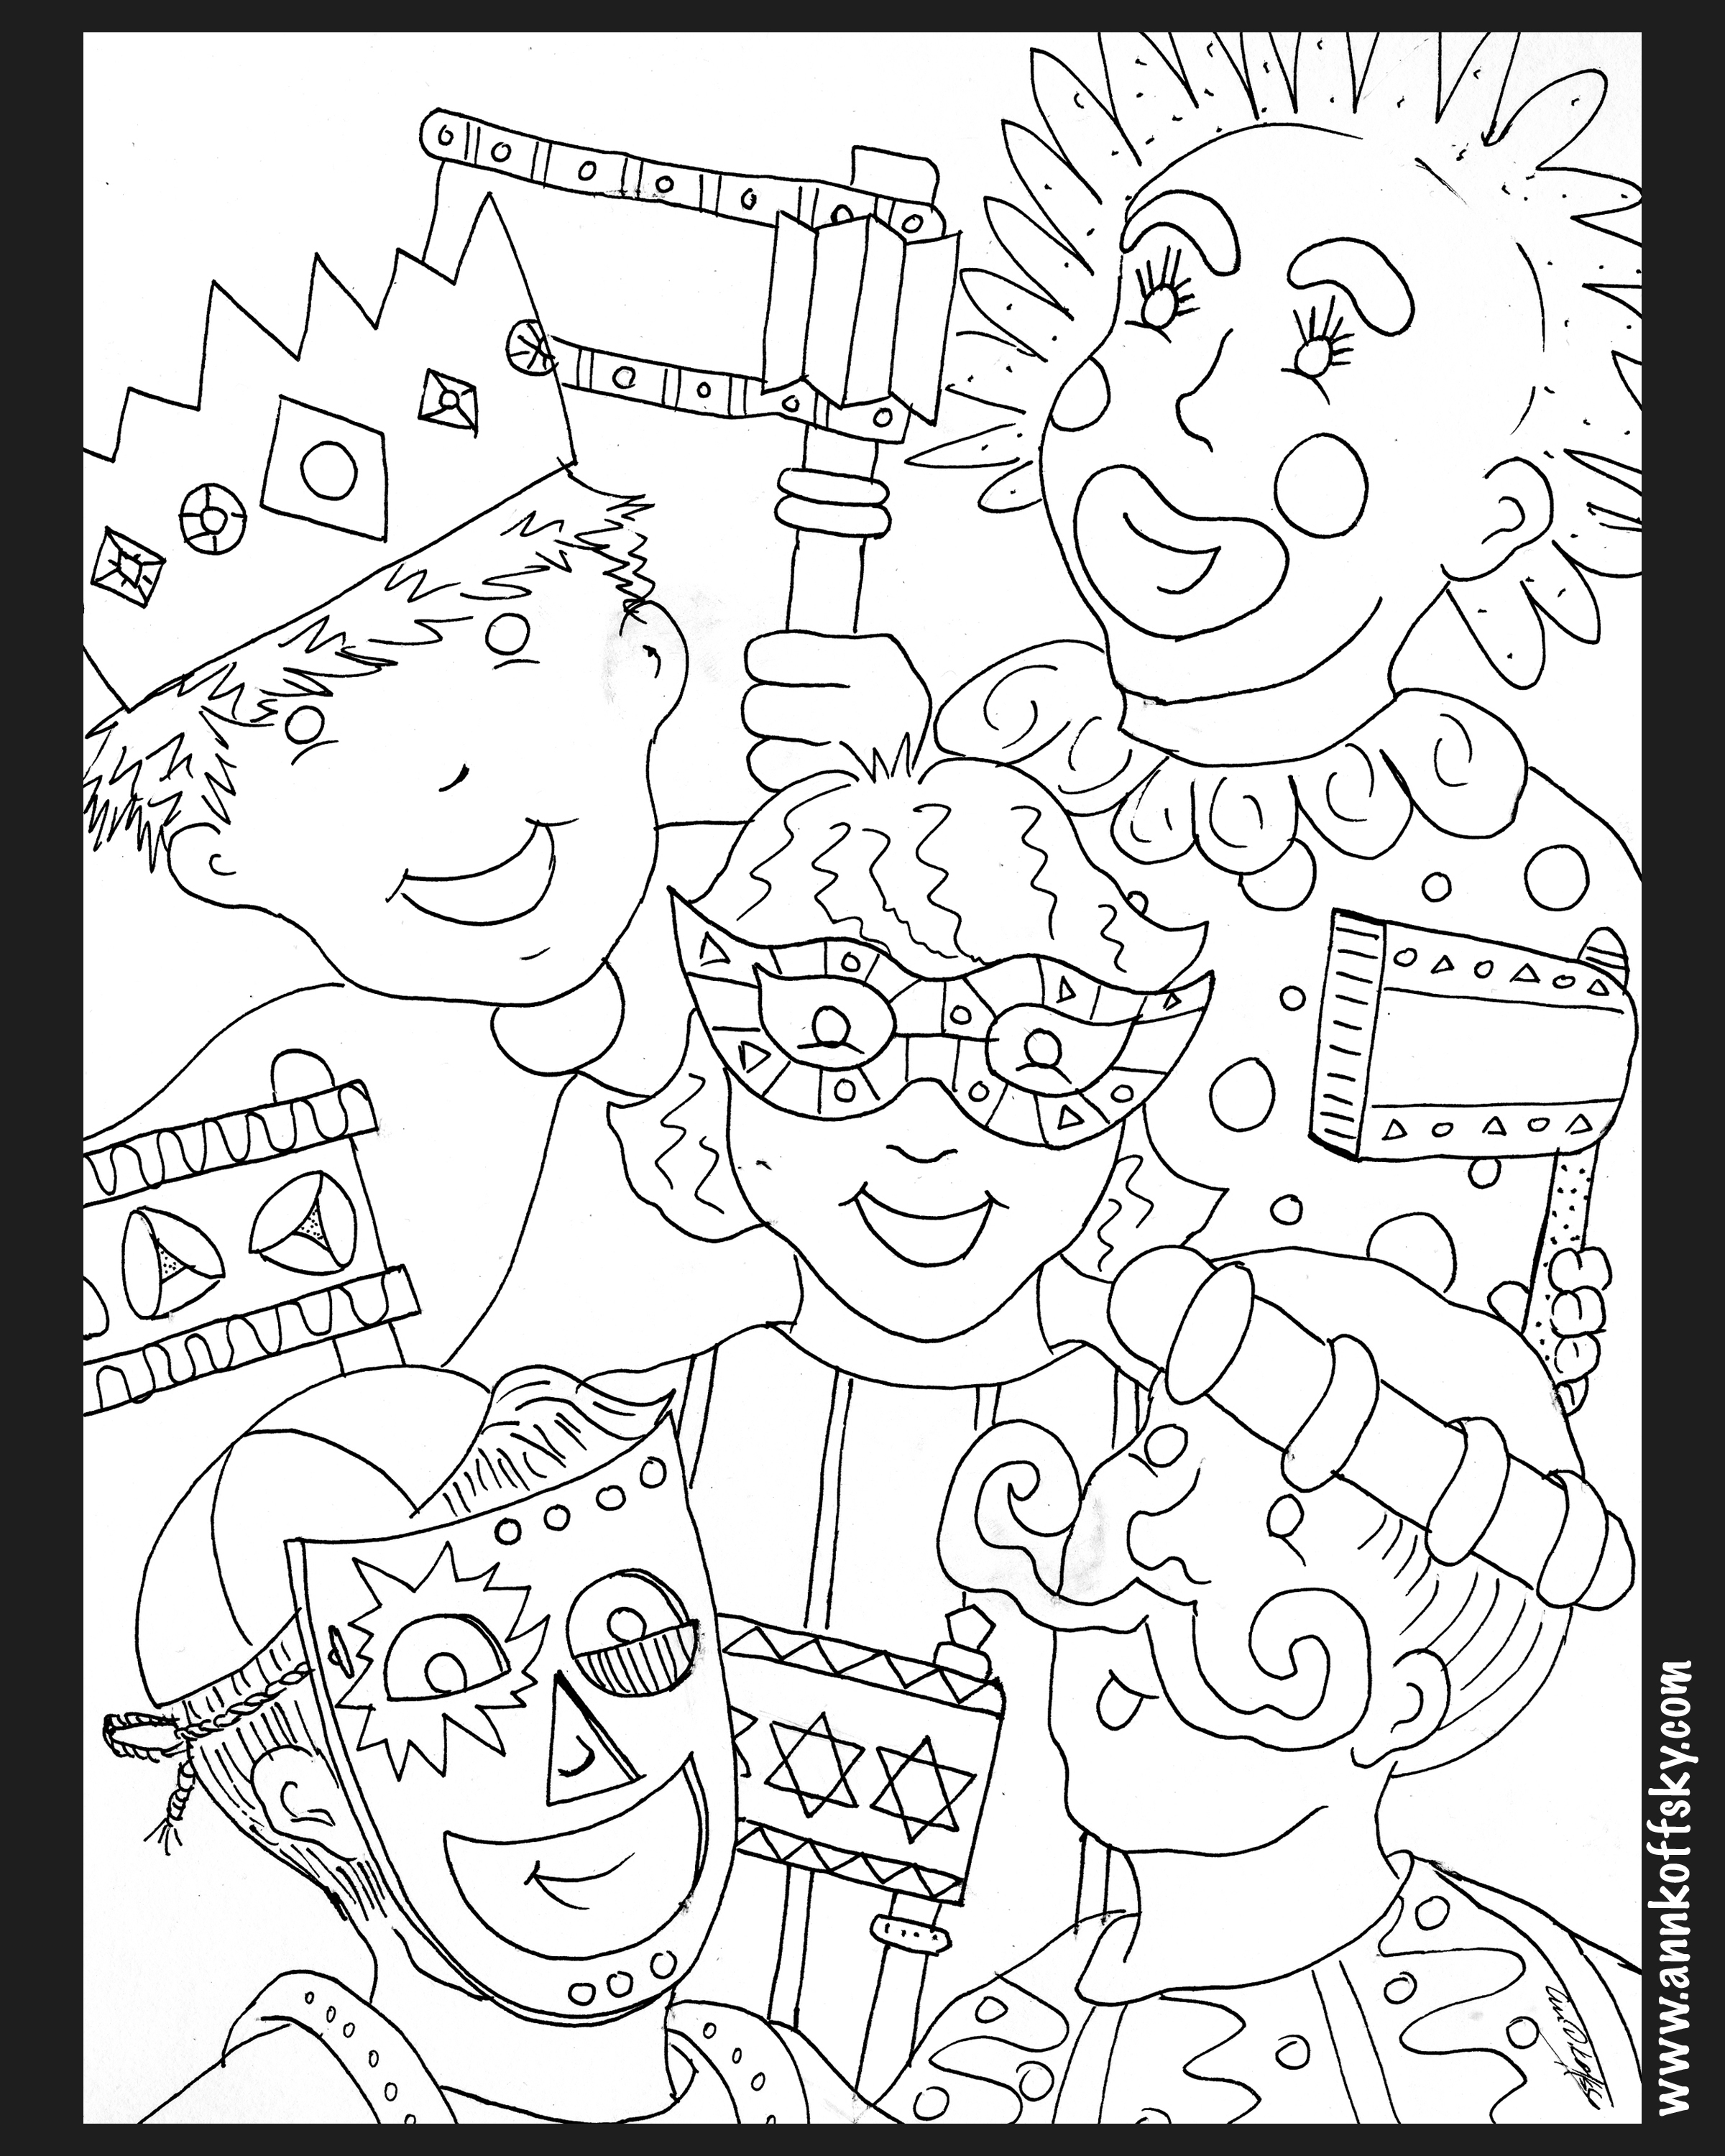 Shabbos Coloring Pages At Getdrawings Com Free For